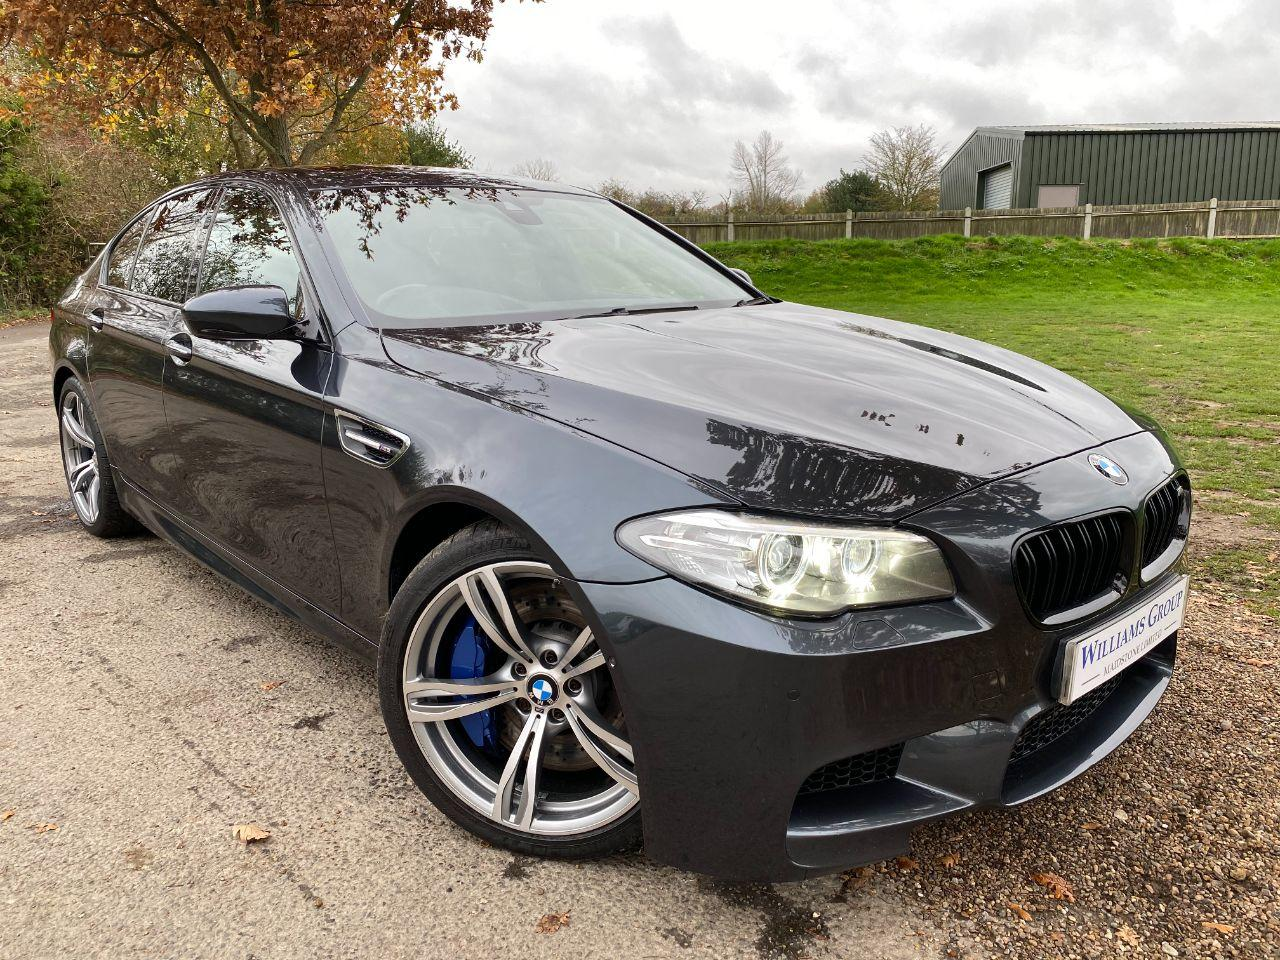 BMW M5 4.4 M5 4dr DCT (20in Alloys! Surround View! ++) Saloon Petrol Singapore Grey Metallic